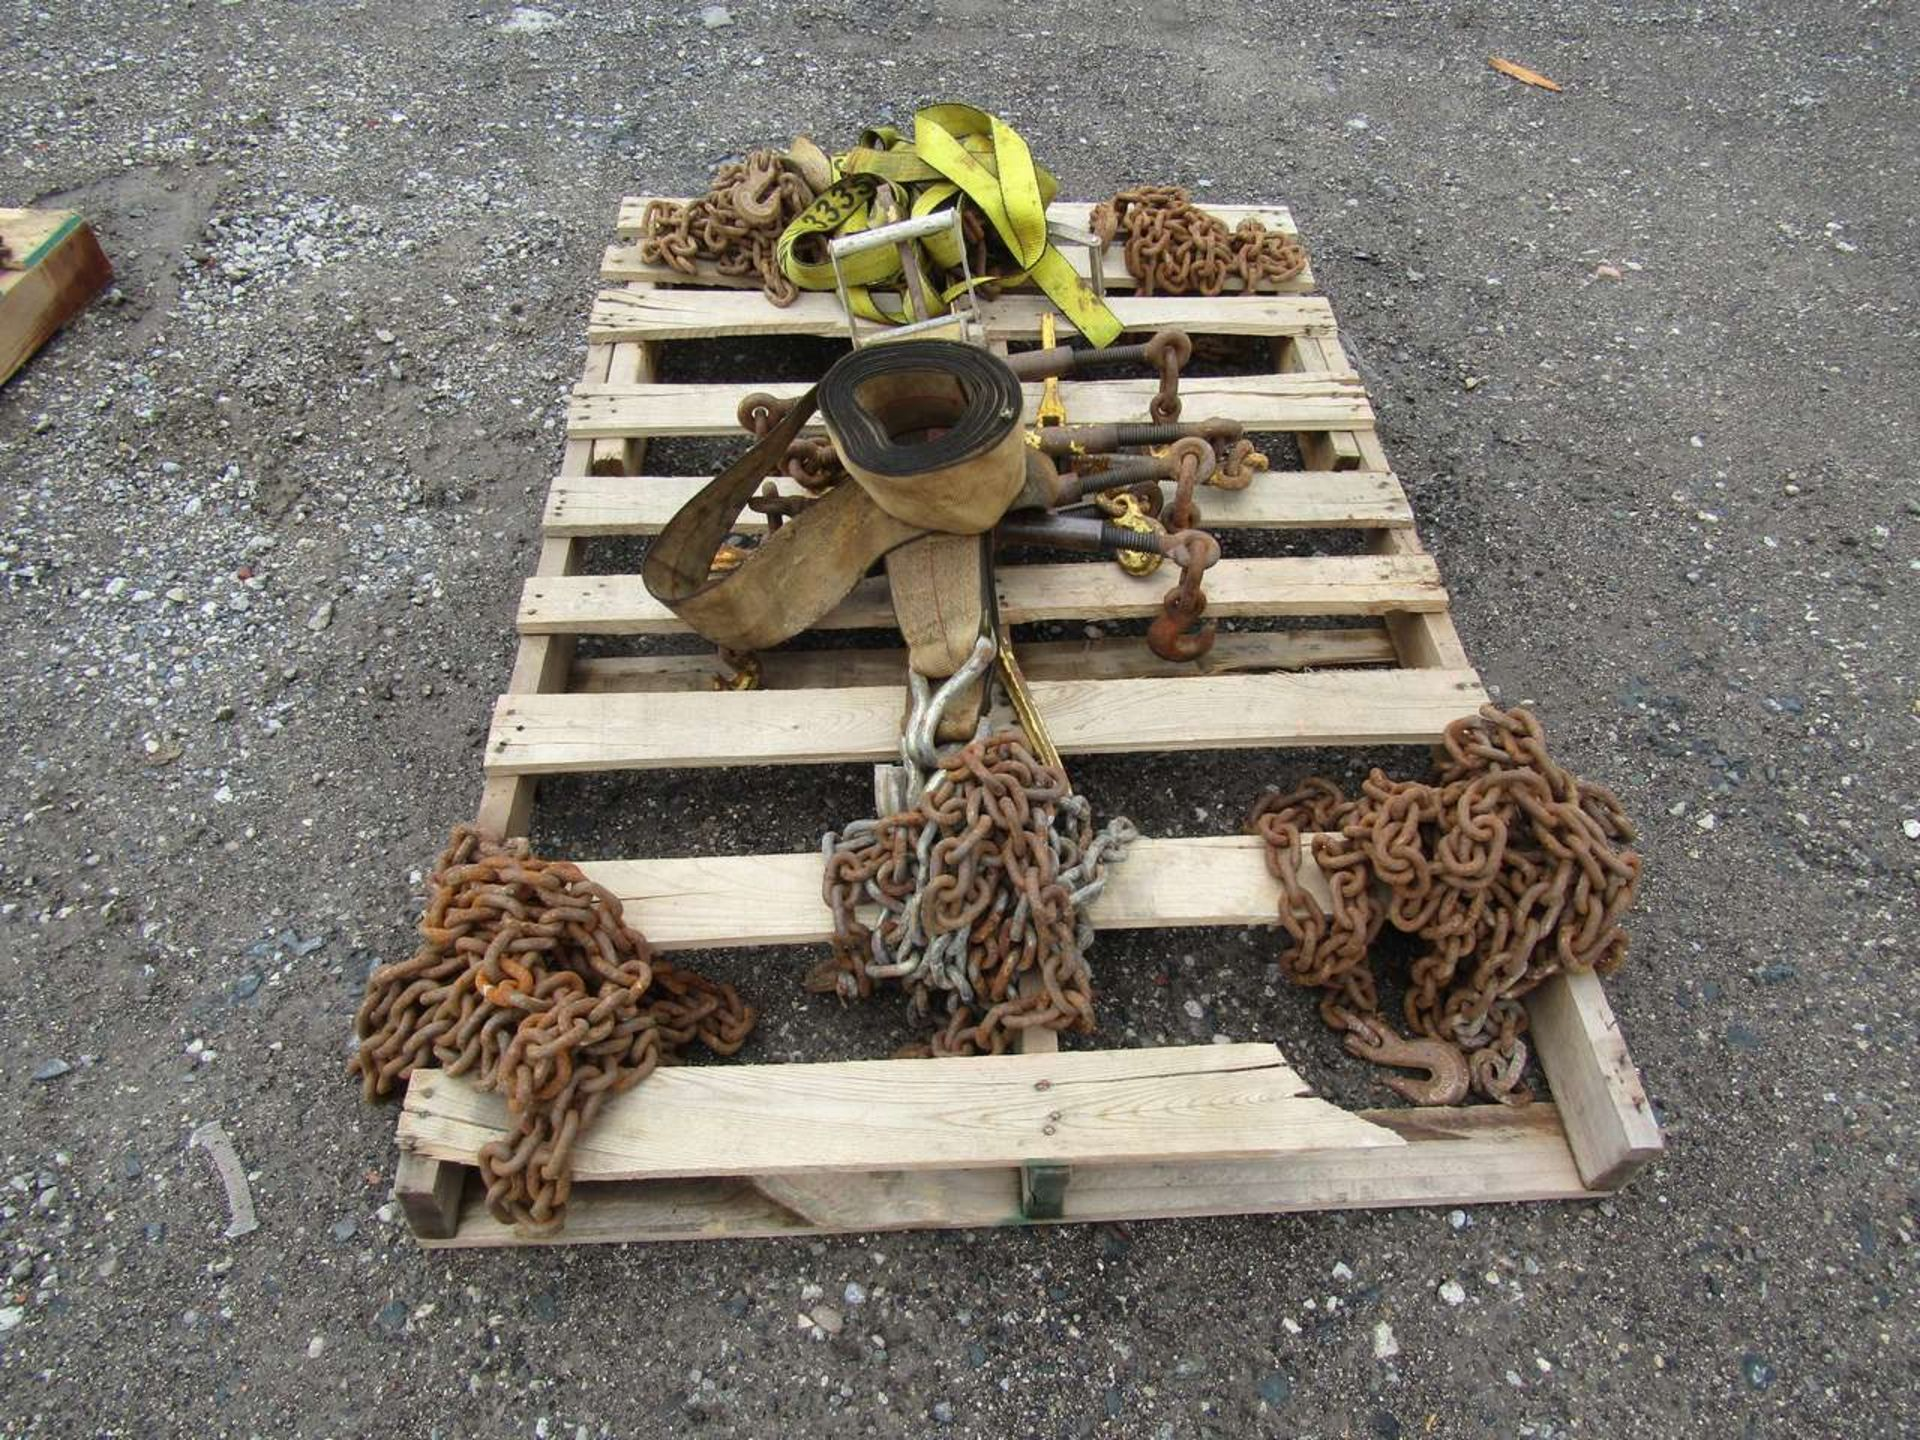 Lot 631O - Skid of Clamps and Chains For Trailers